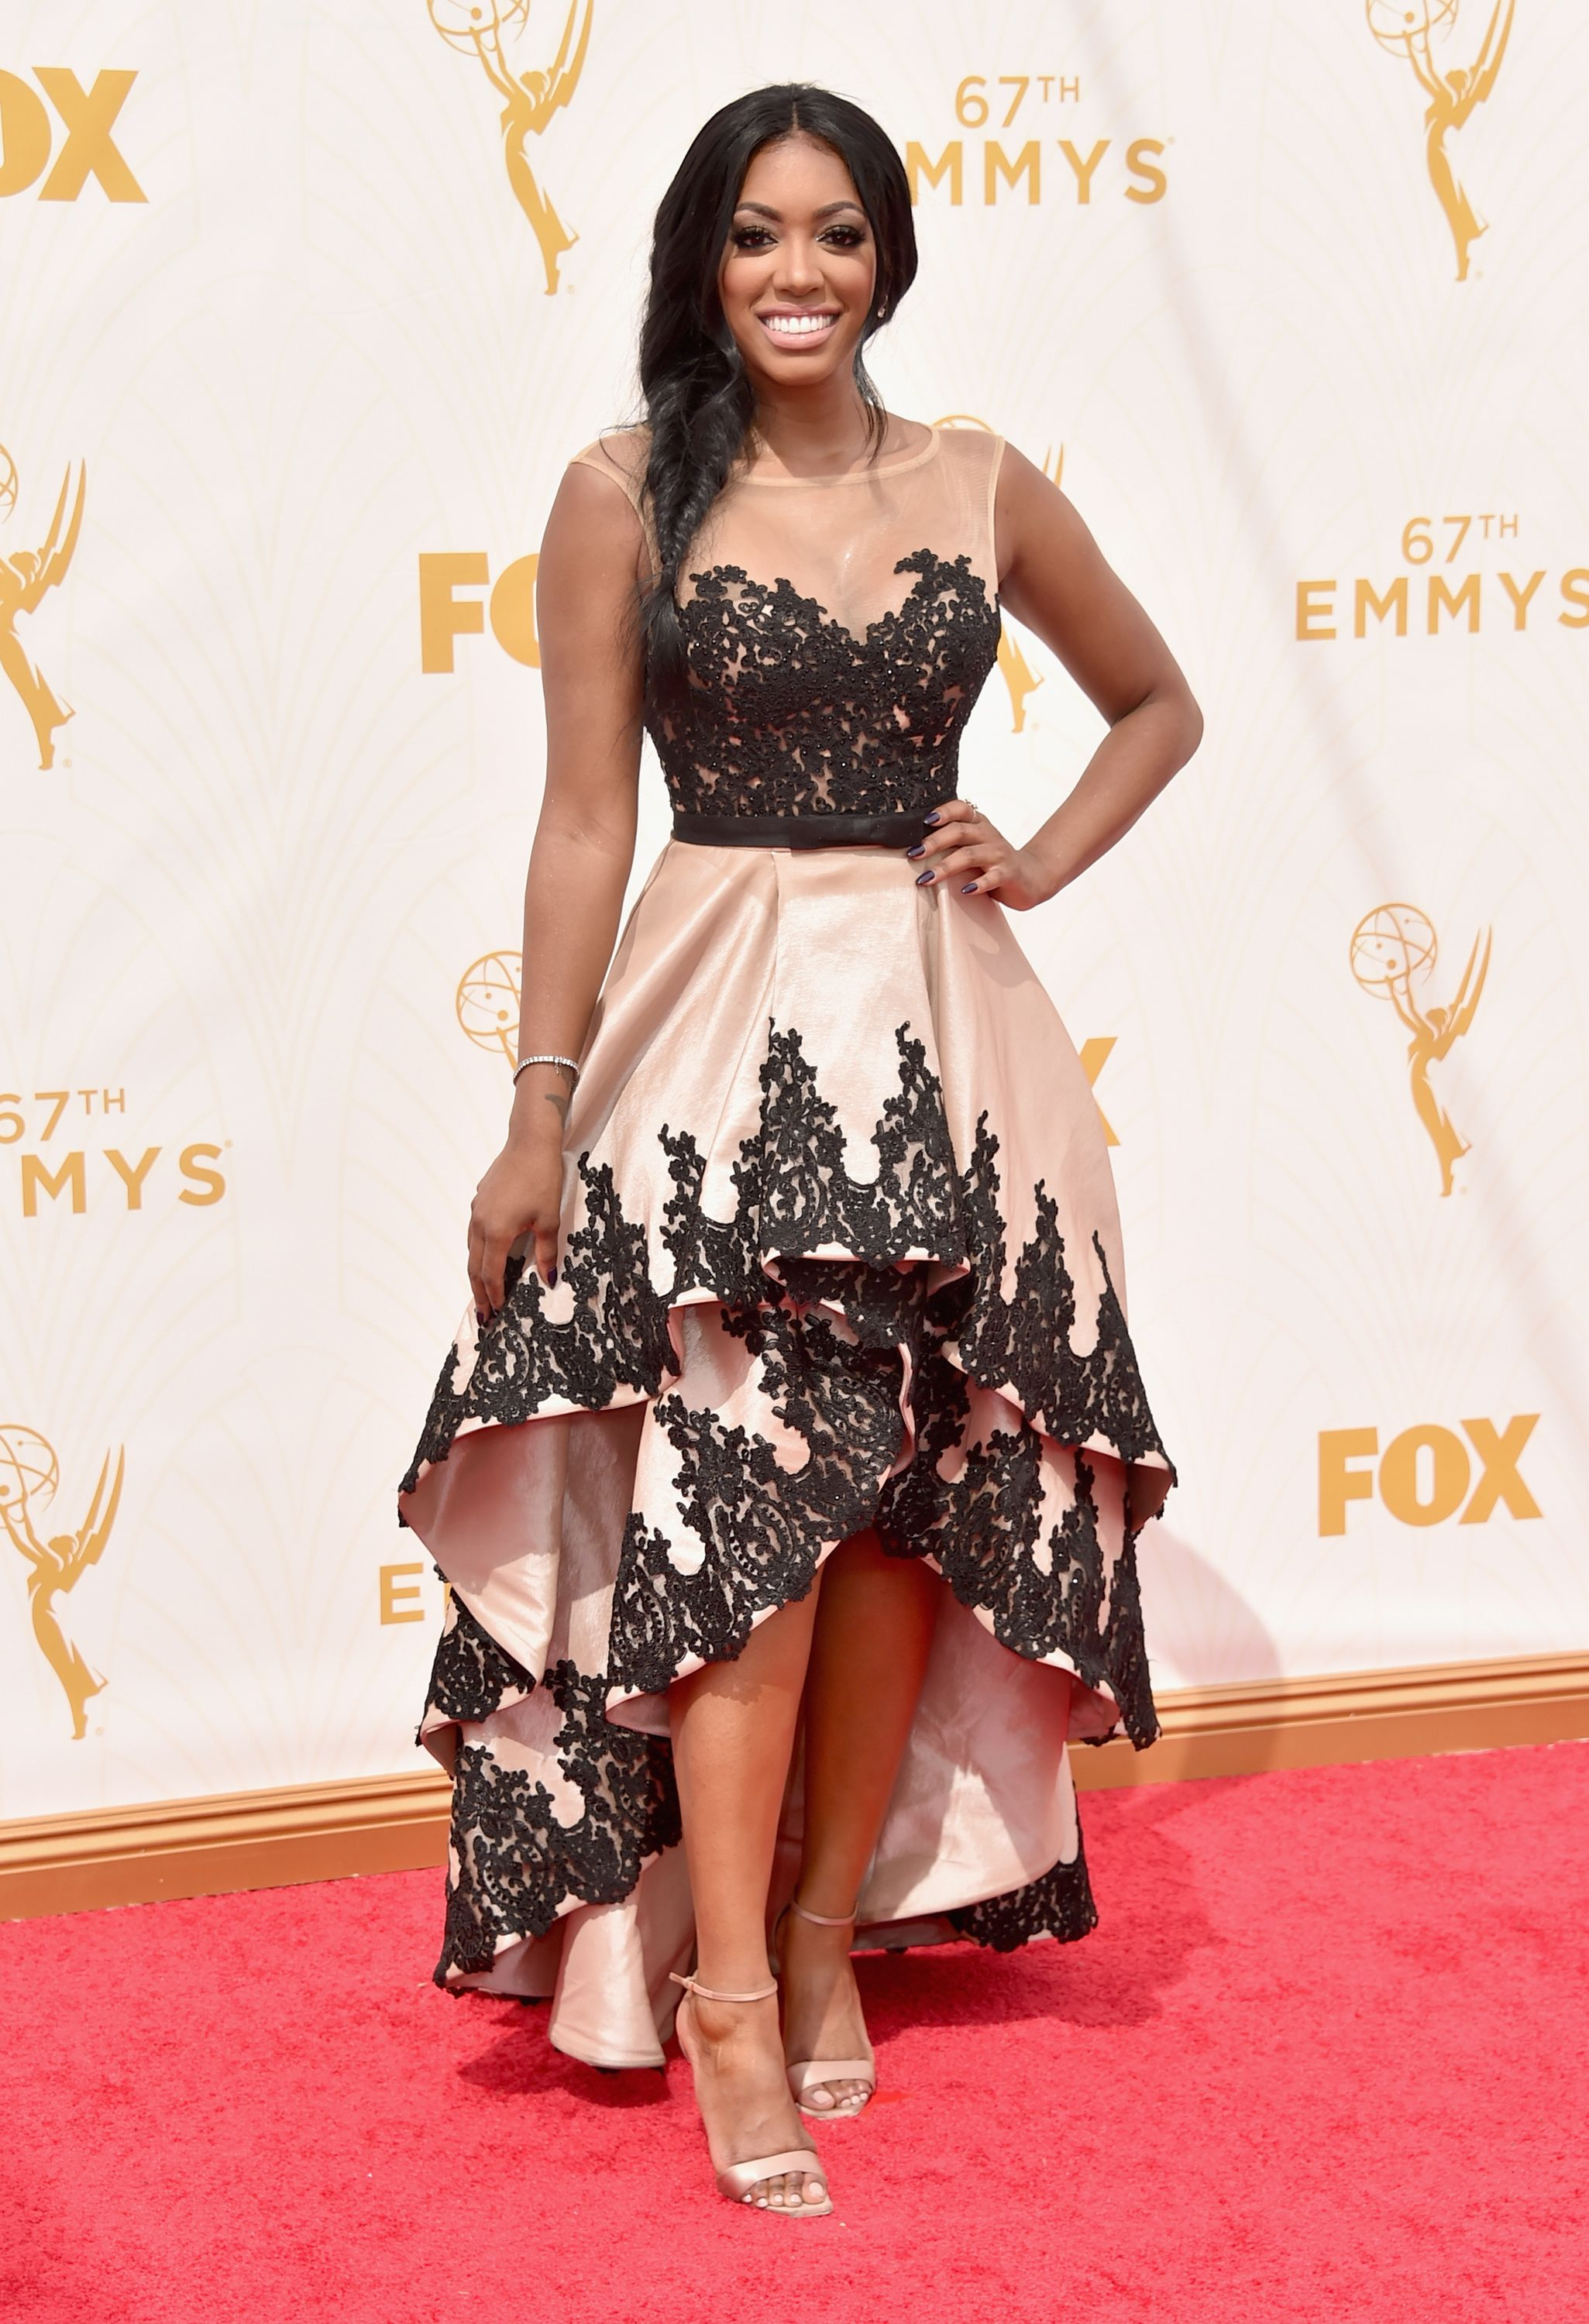 Porsha Williams at the Emmy Awards  on September 20, 2015 in L.A. | Photo: Getty Images